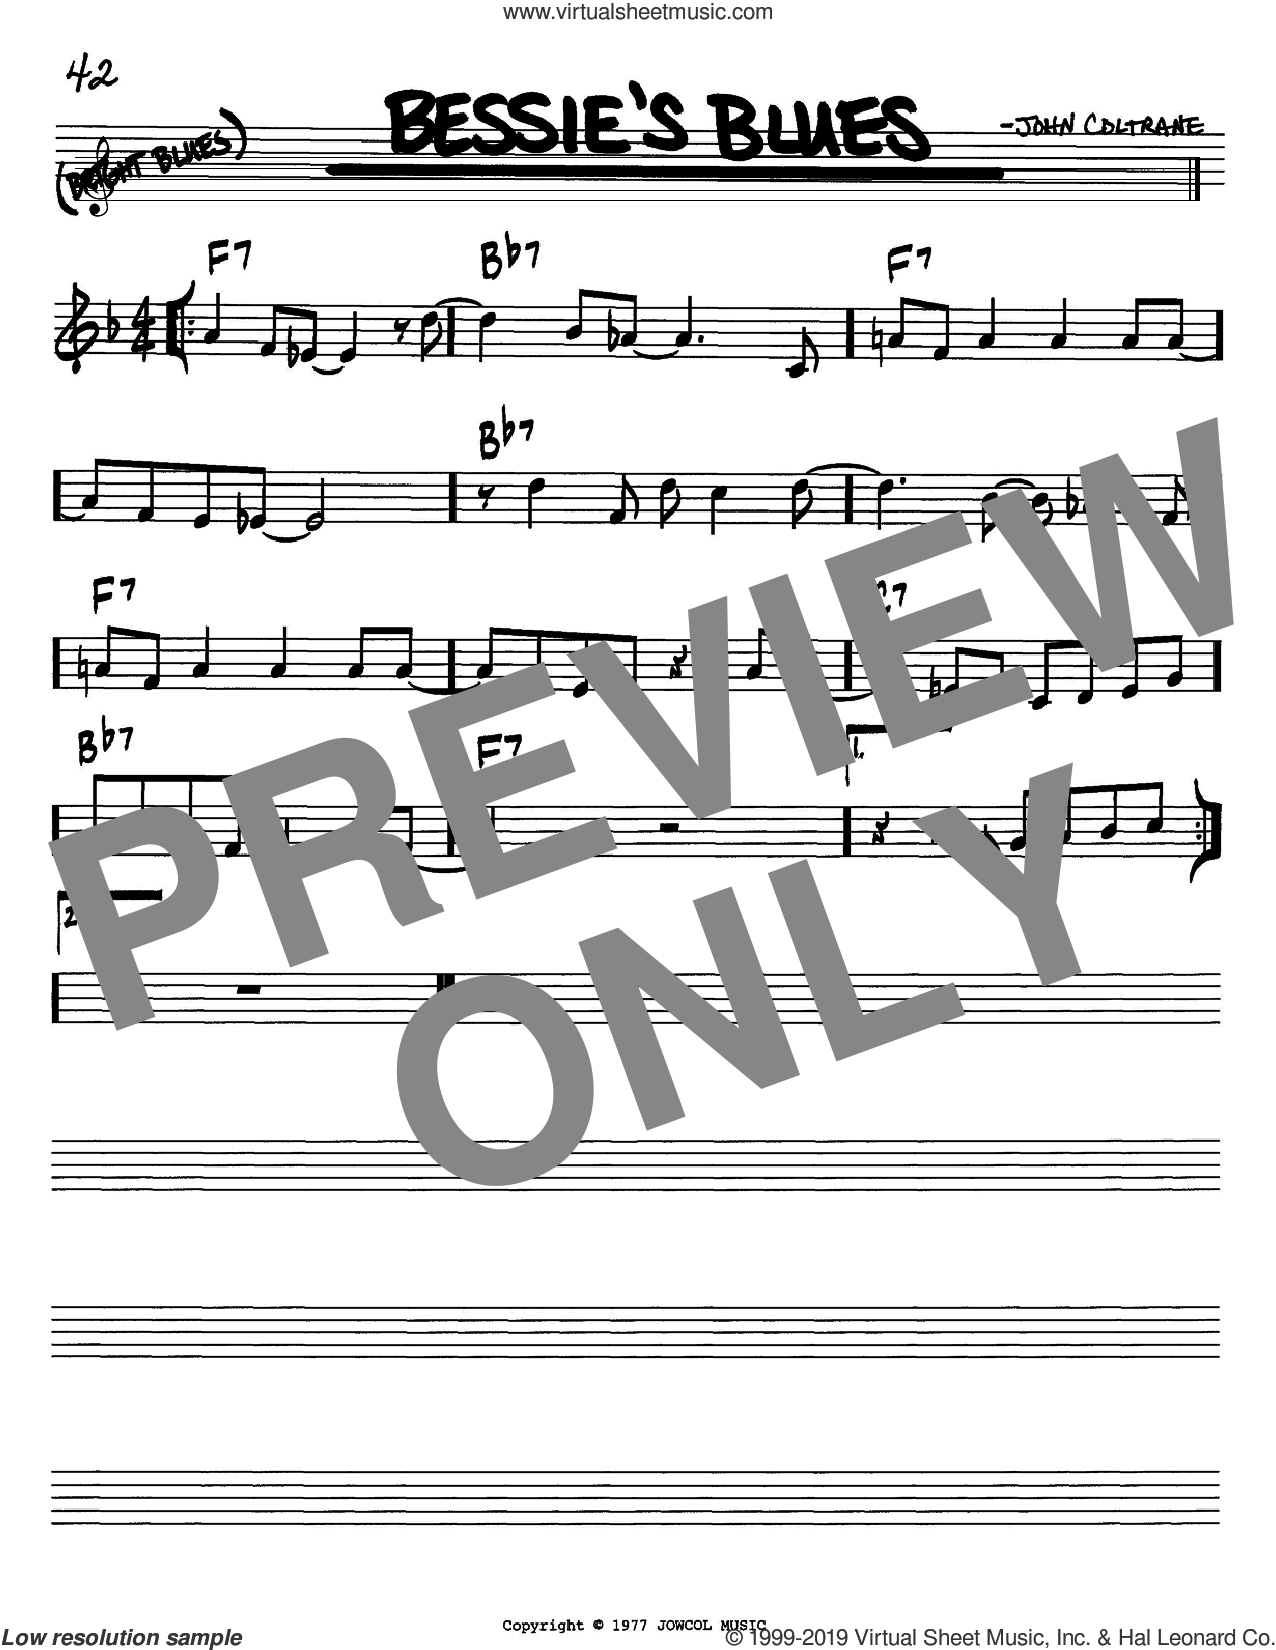 Bessie's Blues sheet music for voice and other instruments (in Bb) by John Coltrane, intermediate skill level